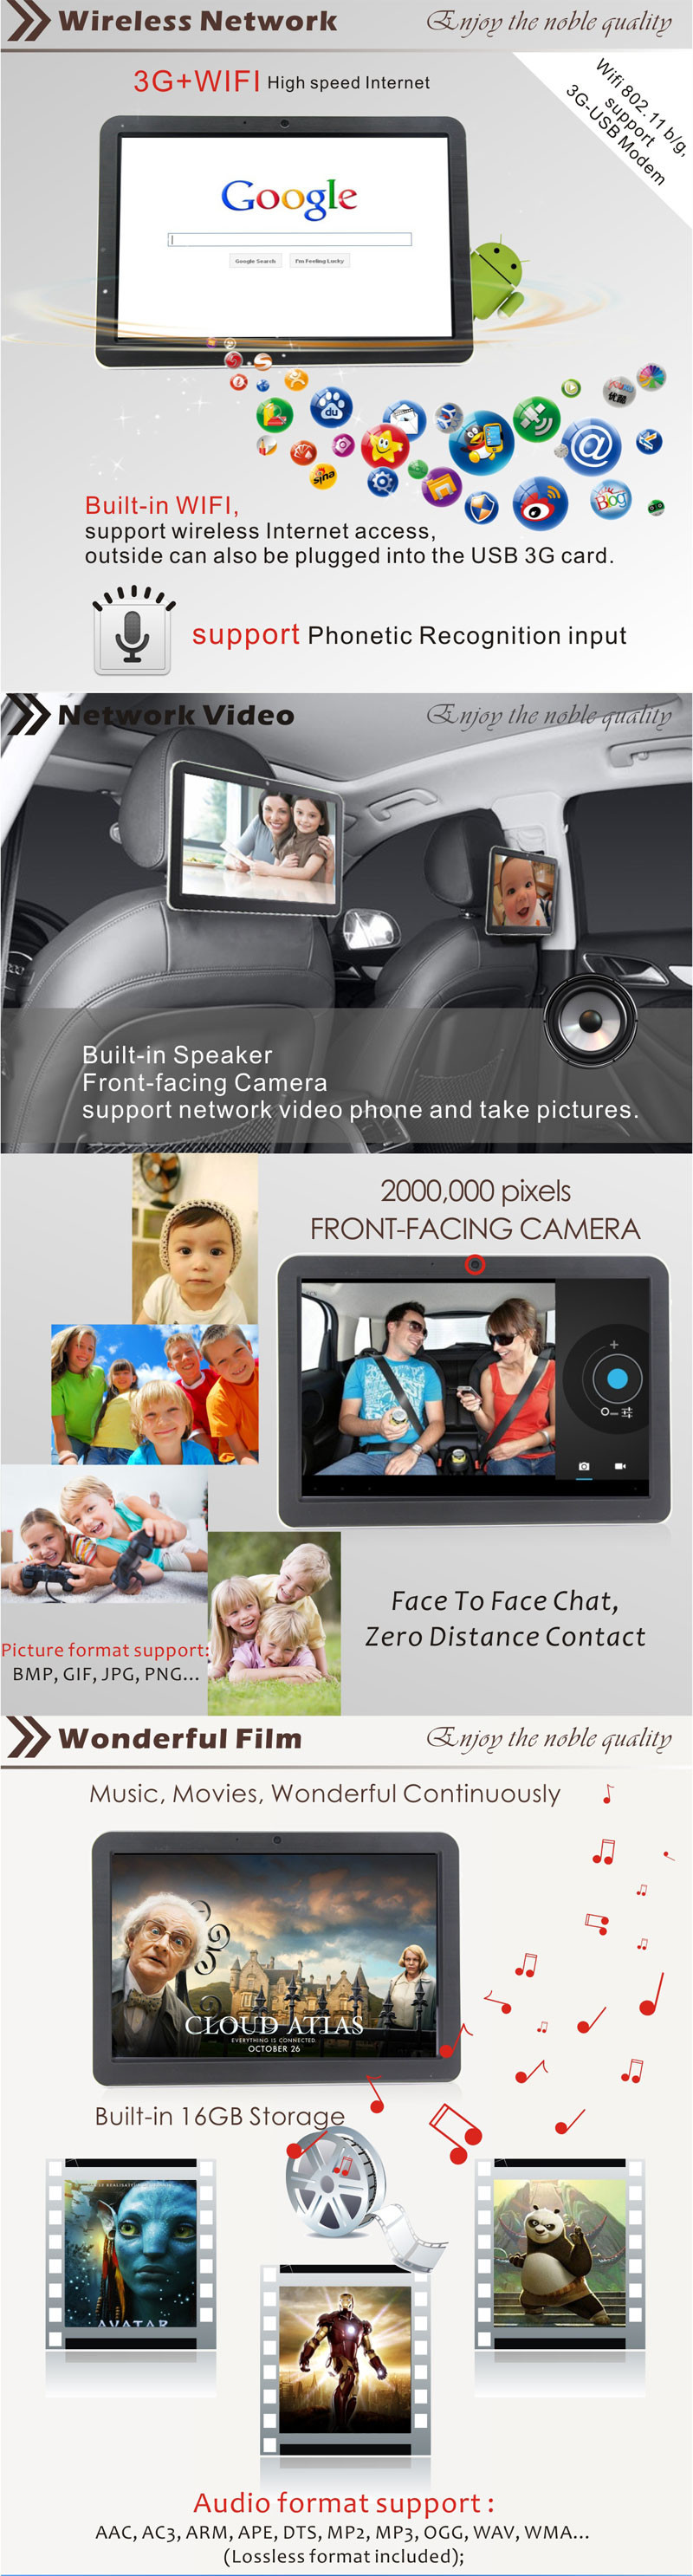 1pcs Car Seat Back Entertainment System,10.1 Inch Touch Screen Android 4.0 digital headrest tft lcd monitor